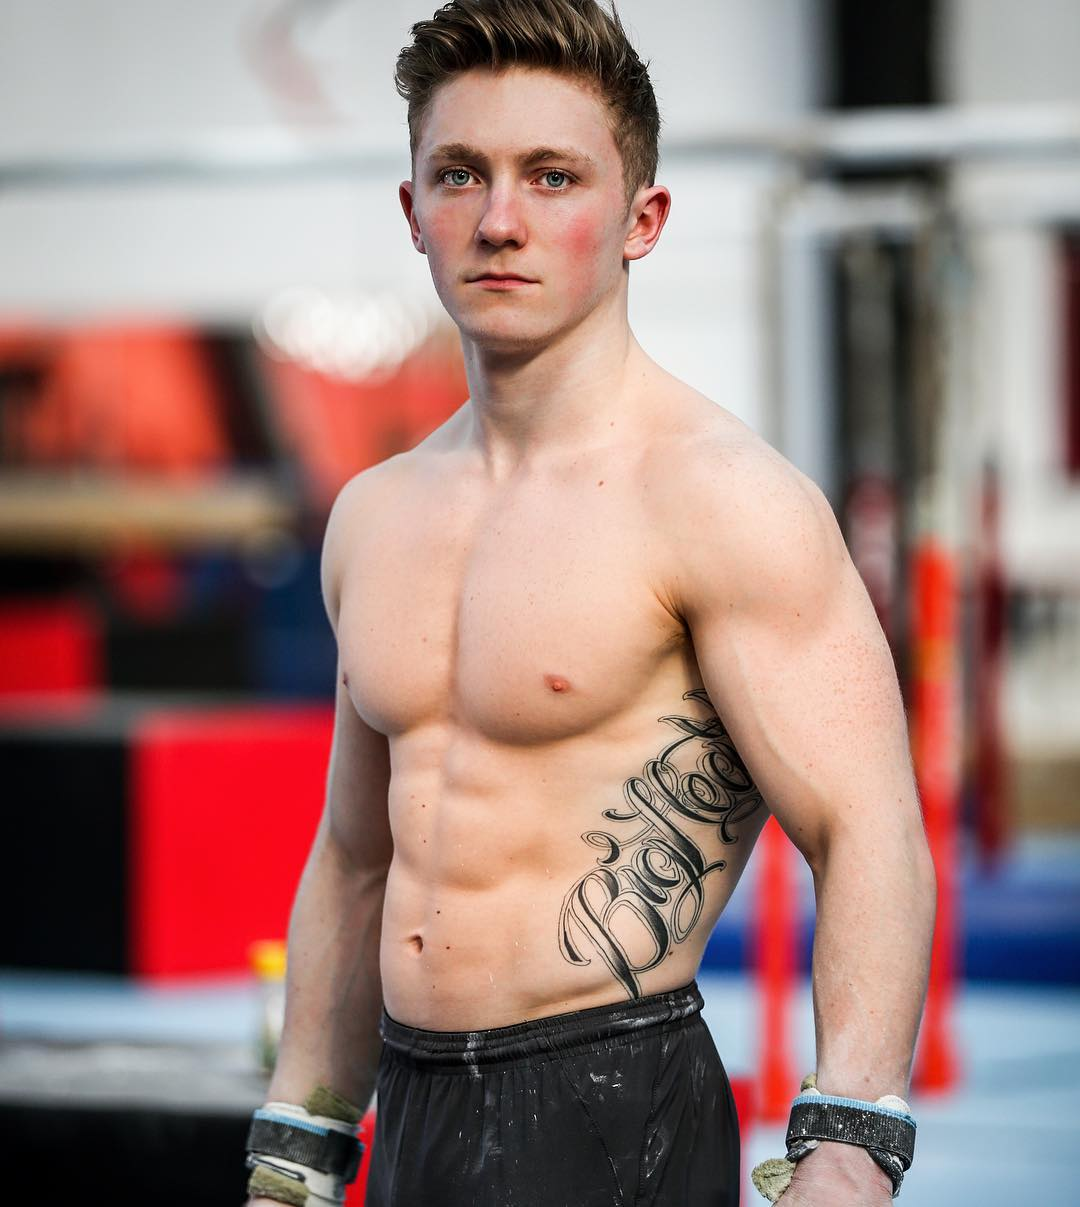 Gymnastics Meets Bodybuilding! By Nile Wilson